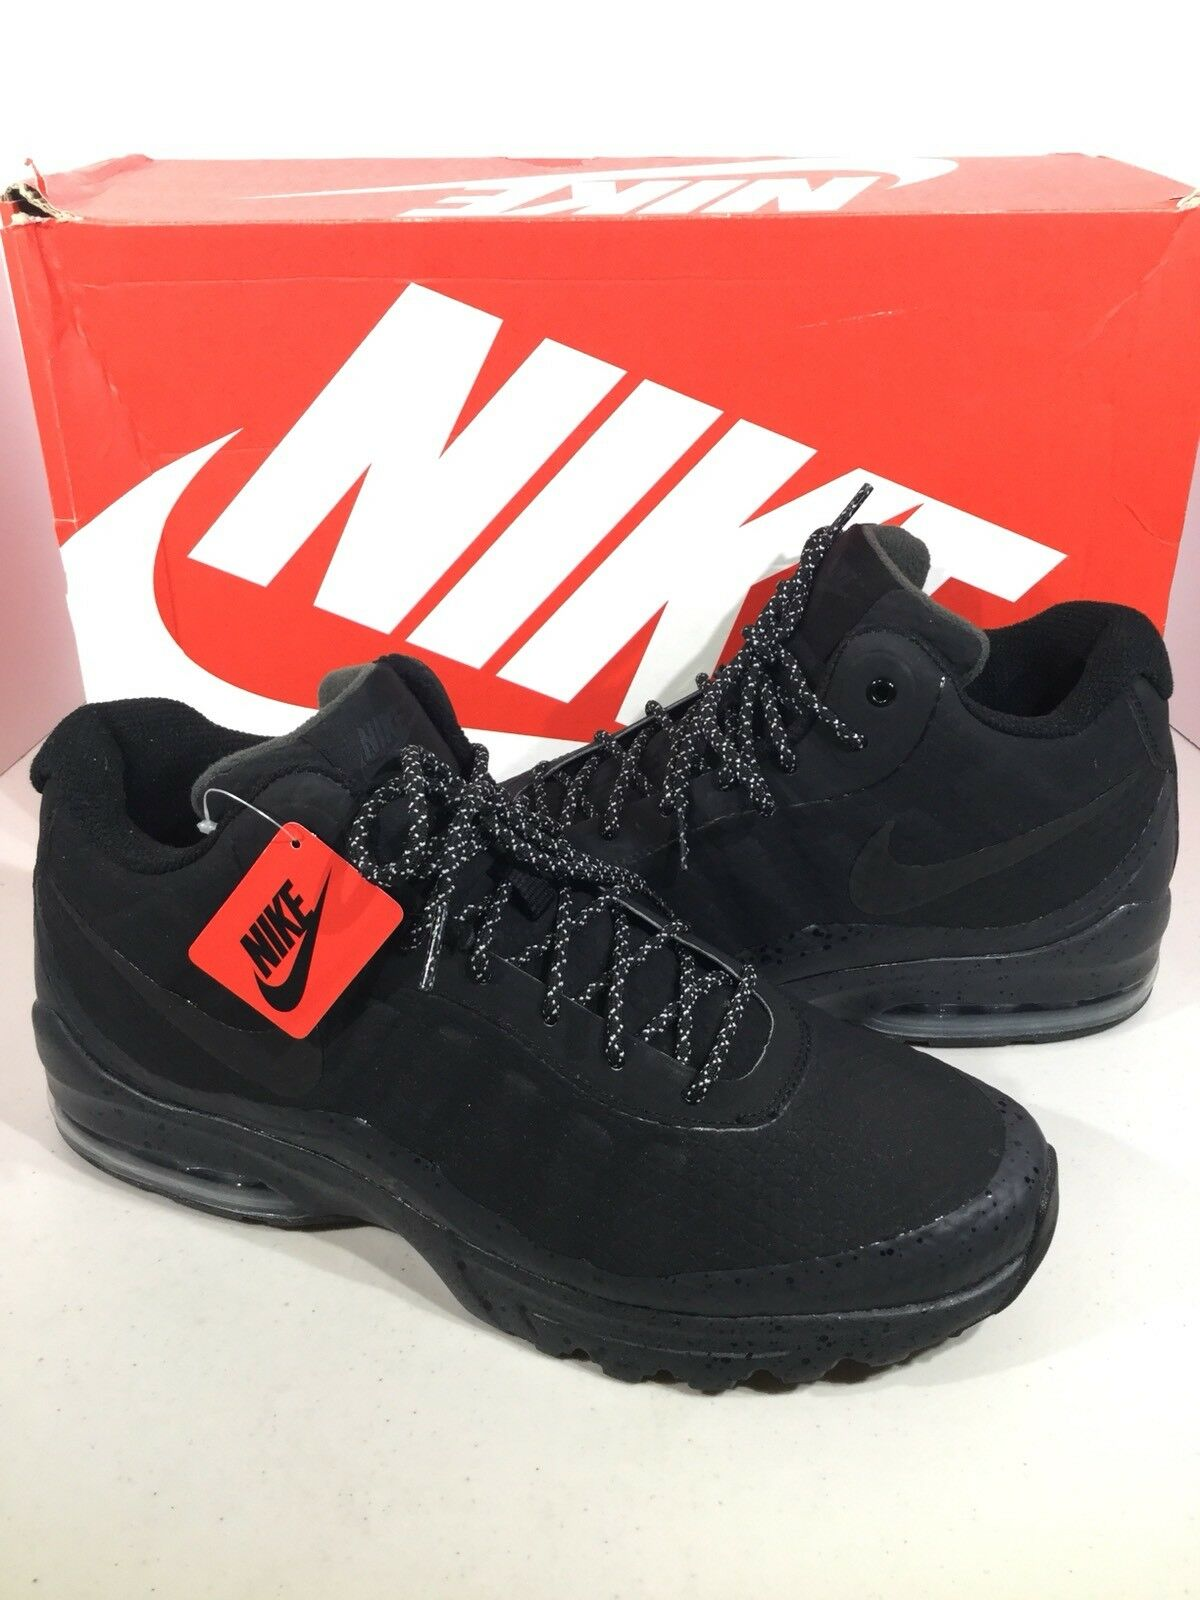 Nike Air Max Invigor Mid Men's Size 12 Black Athletic Running Shoes F1-187